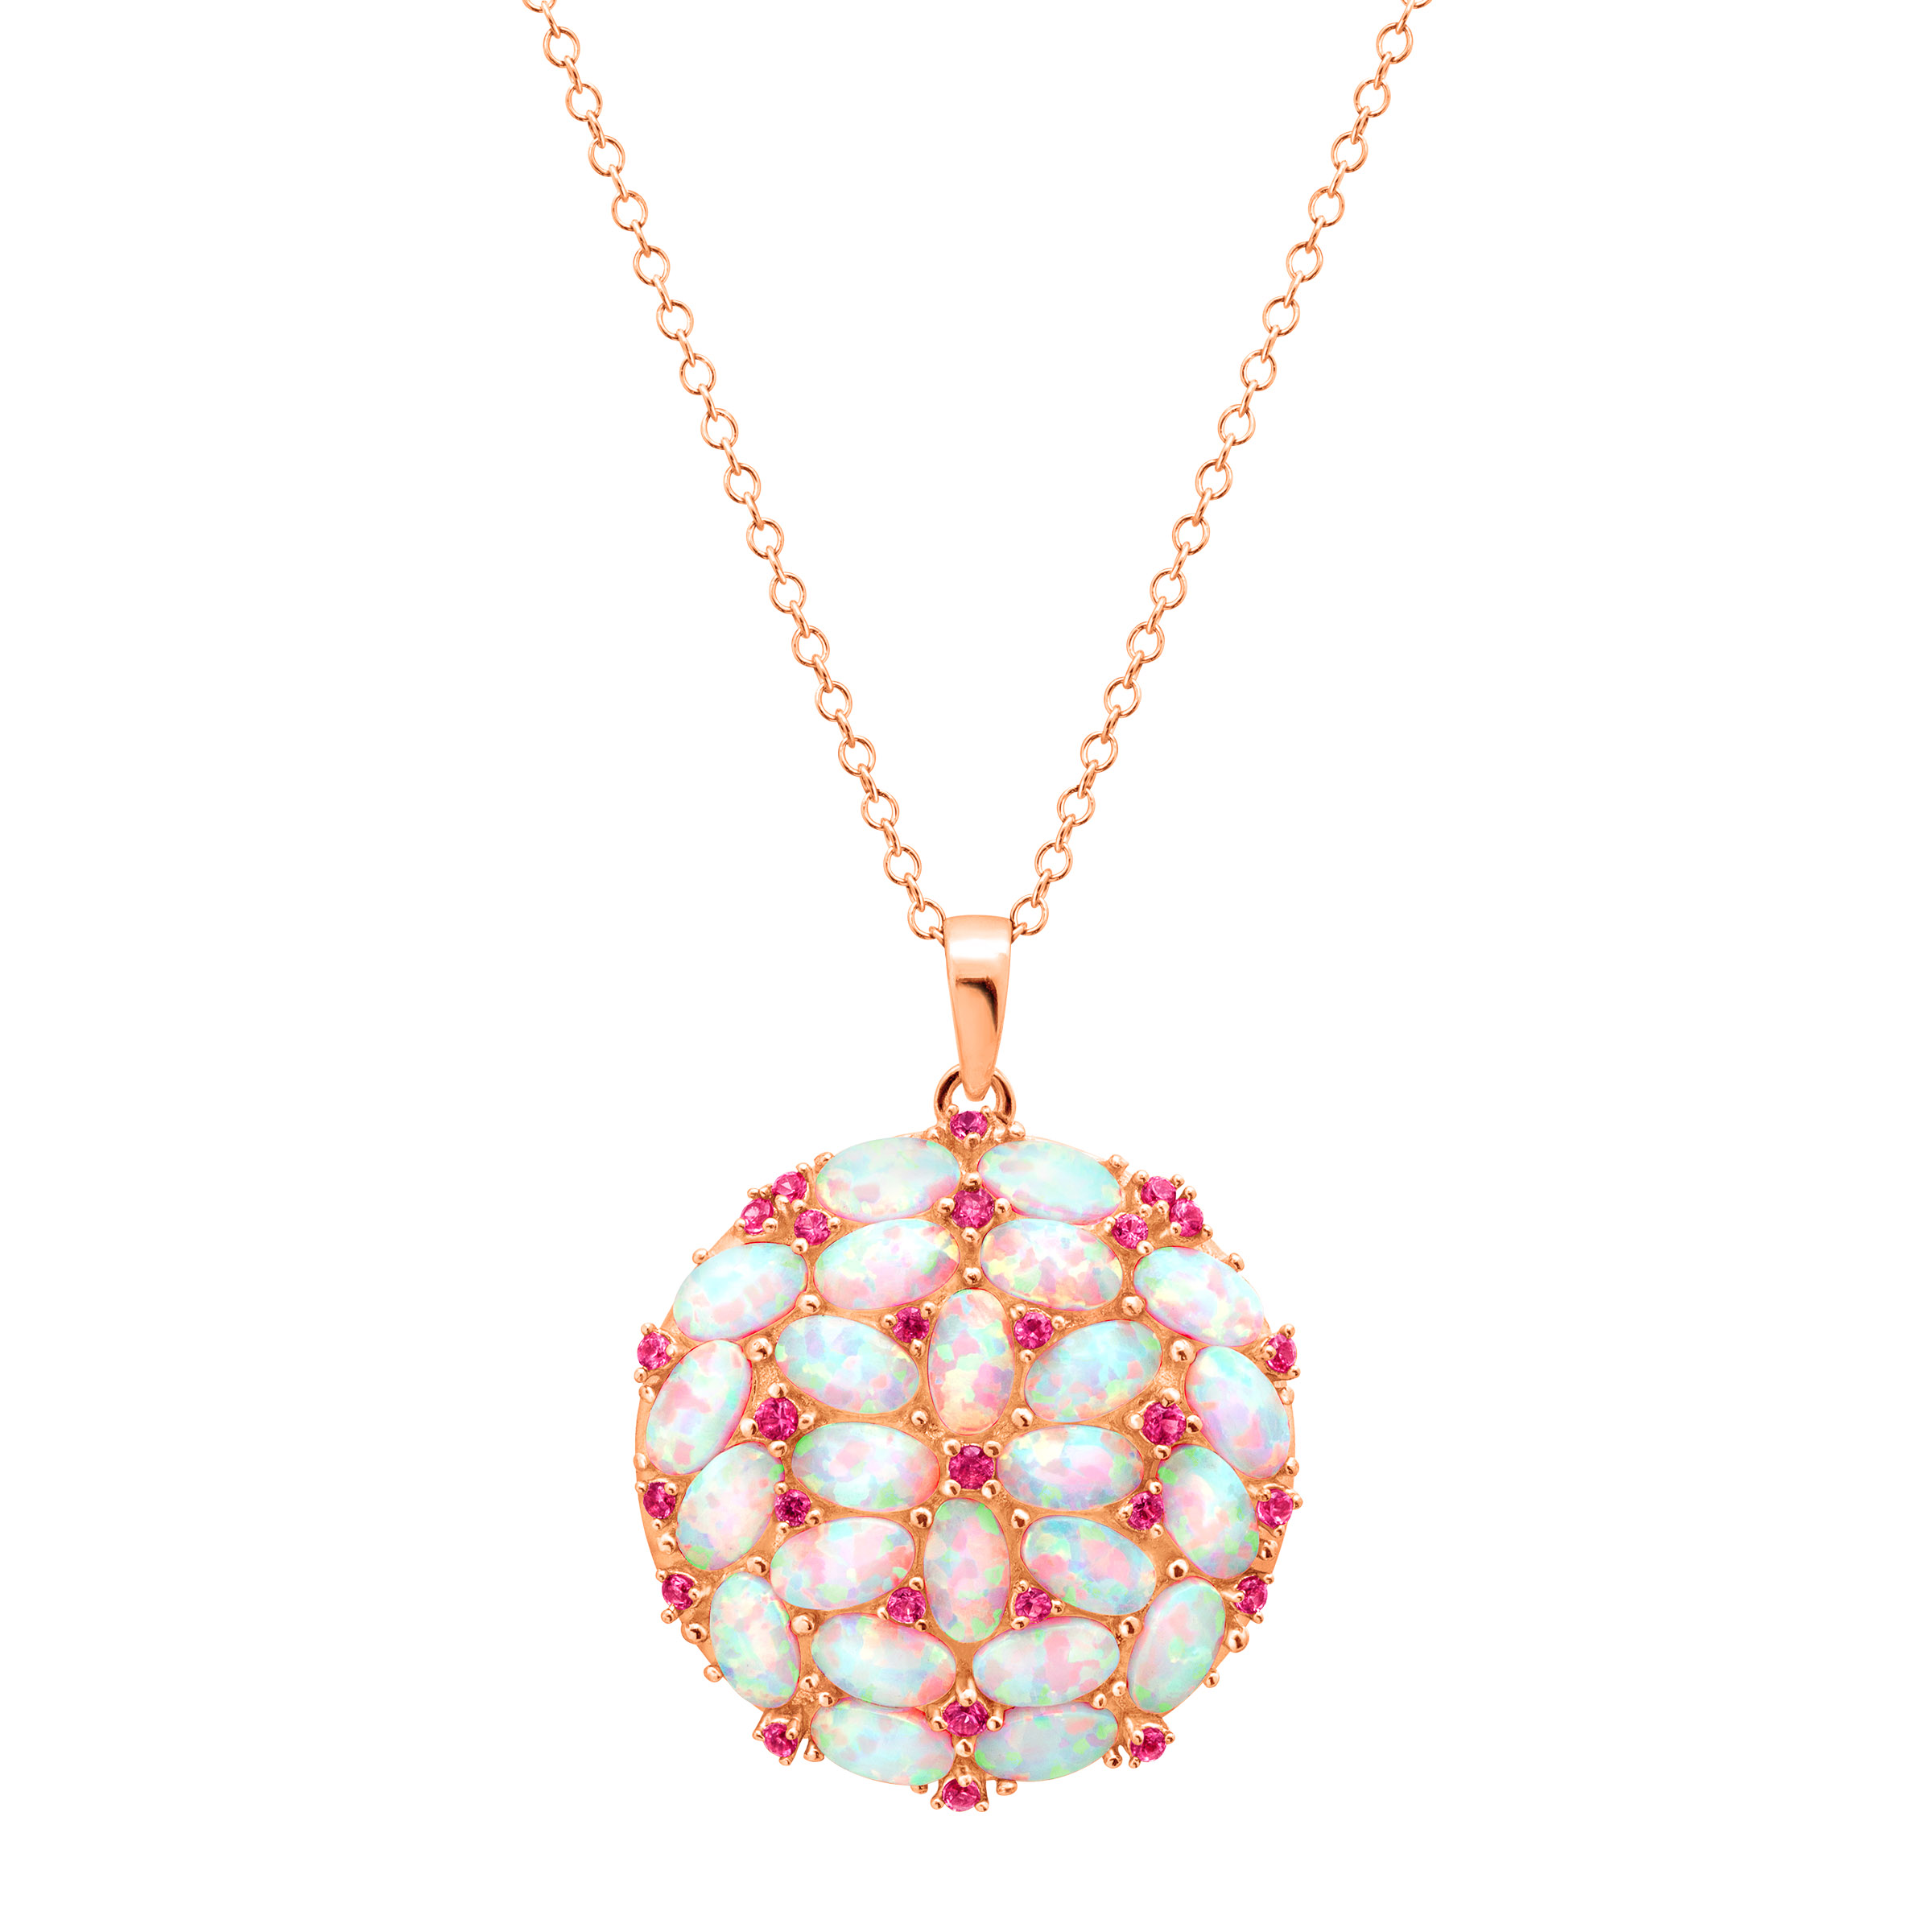 2 3 8 ct Created Opal & Pink Sapphire Medallion Pendant Necklace in 18kt Rose Gold-Plated Sterling Silver by Richline Group